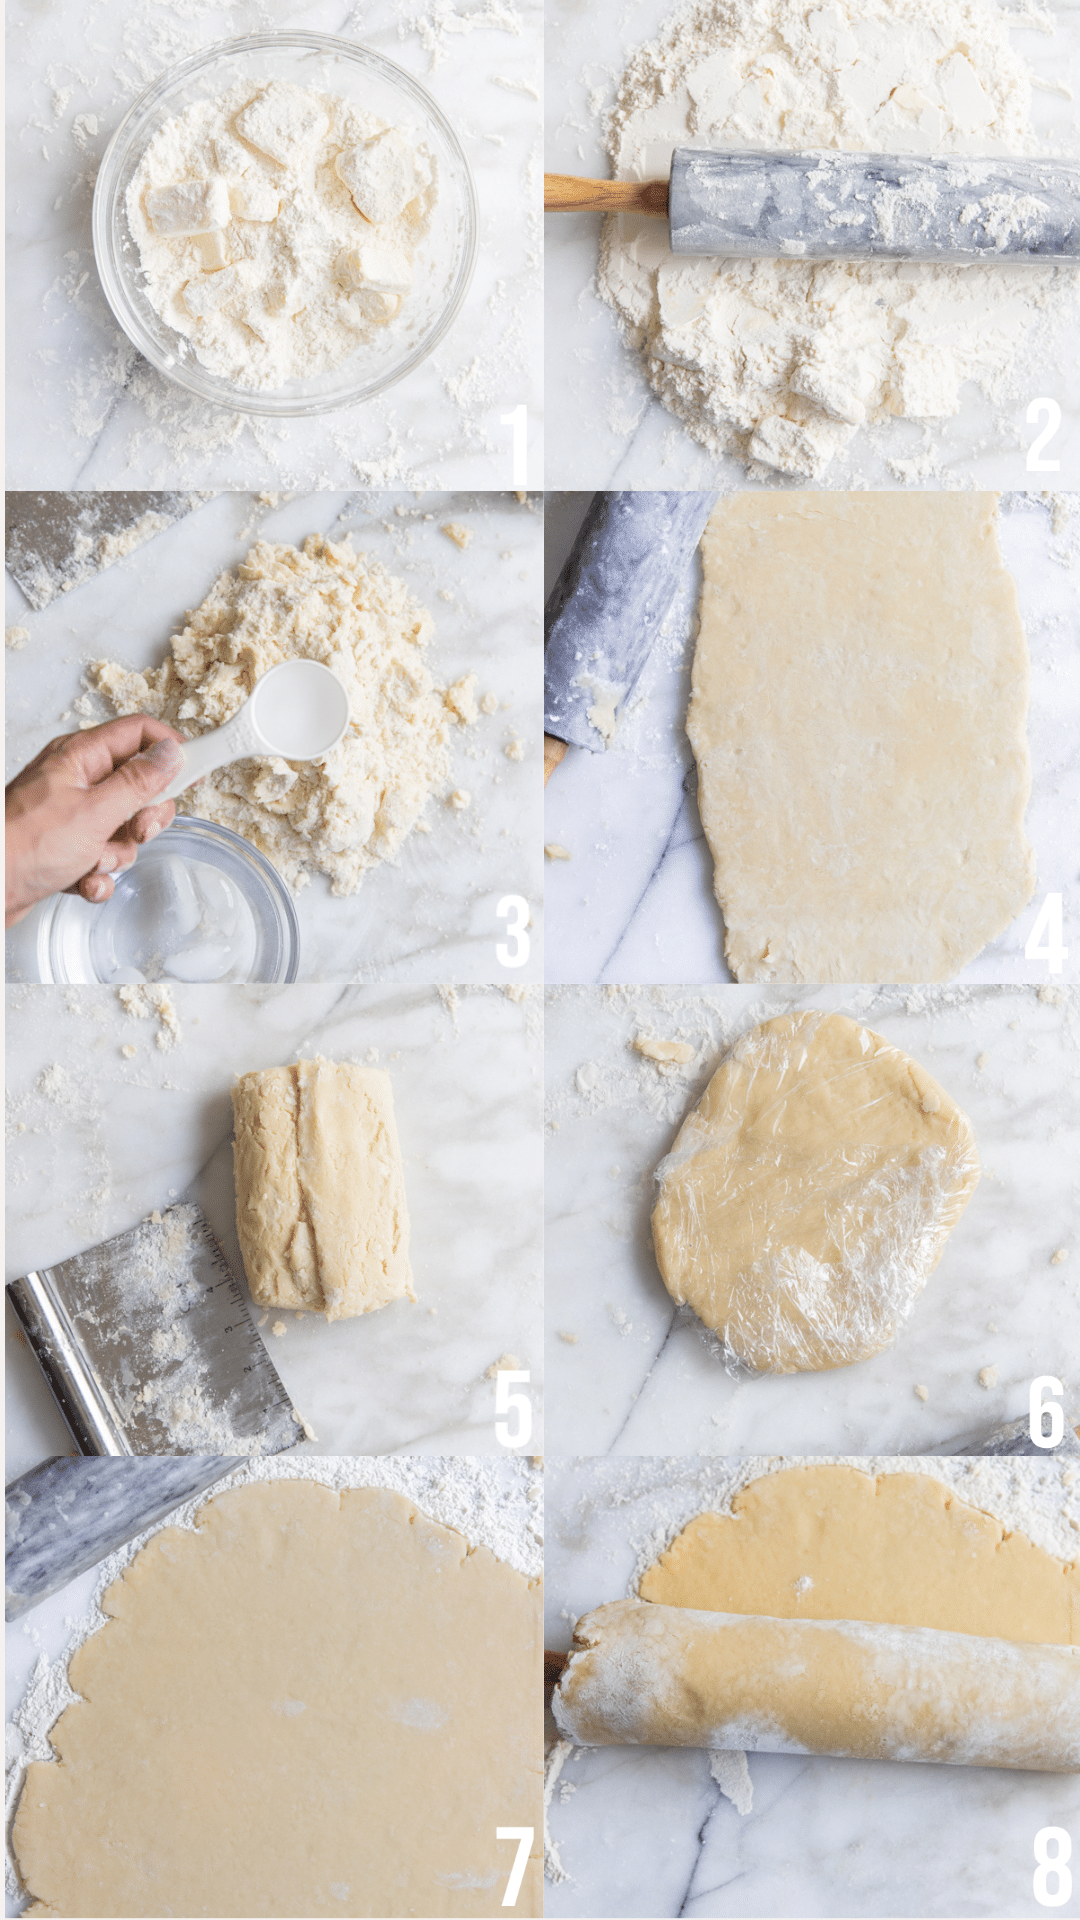 how to make the dough for a galette